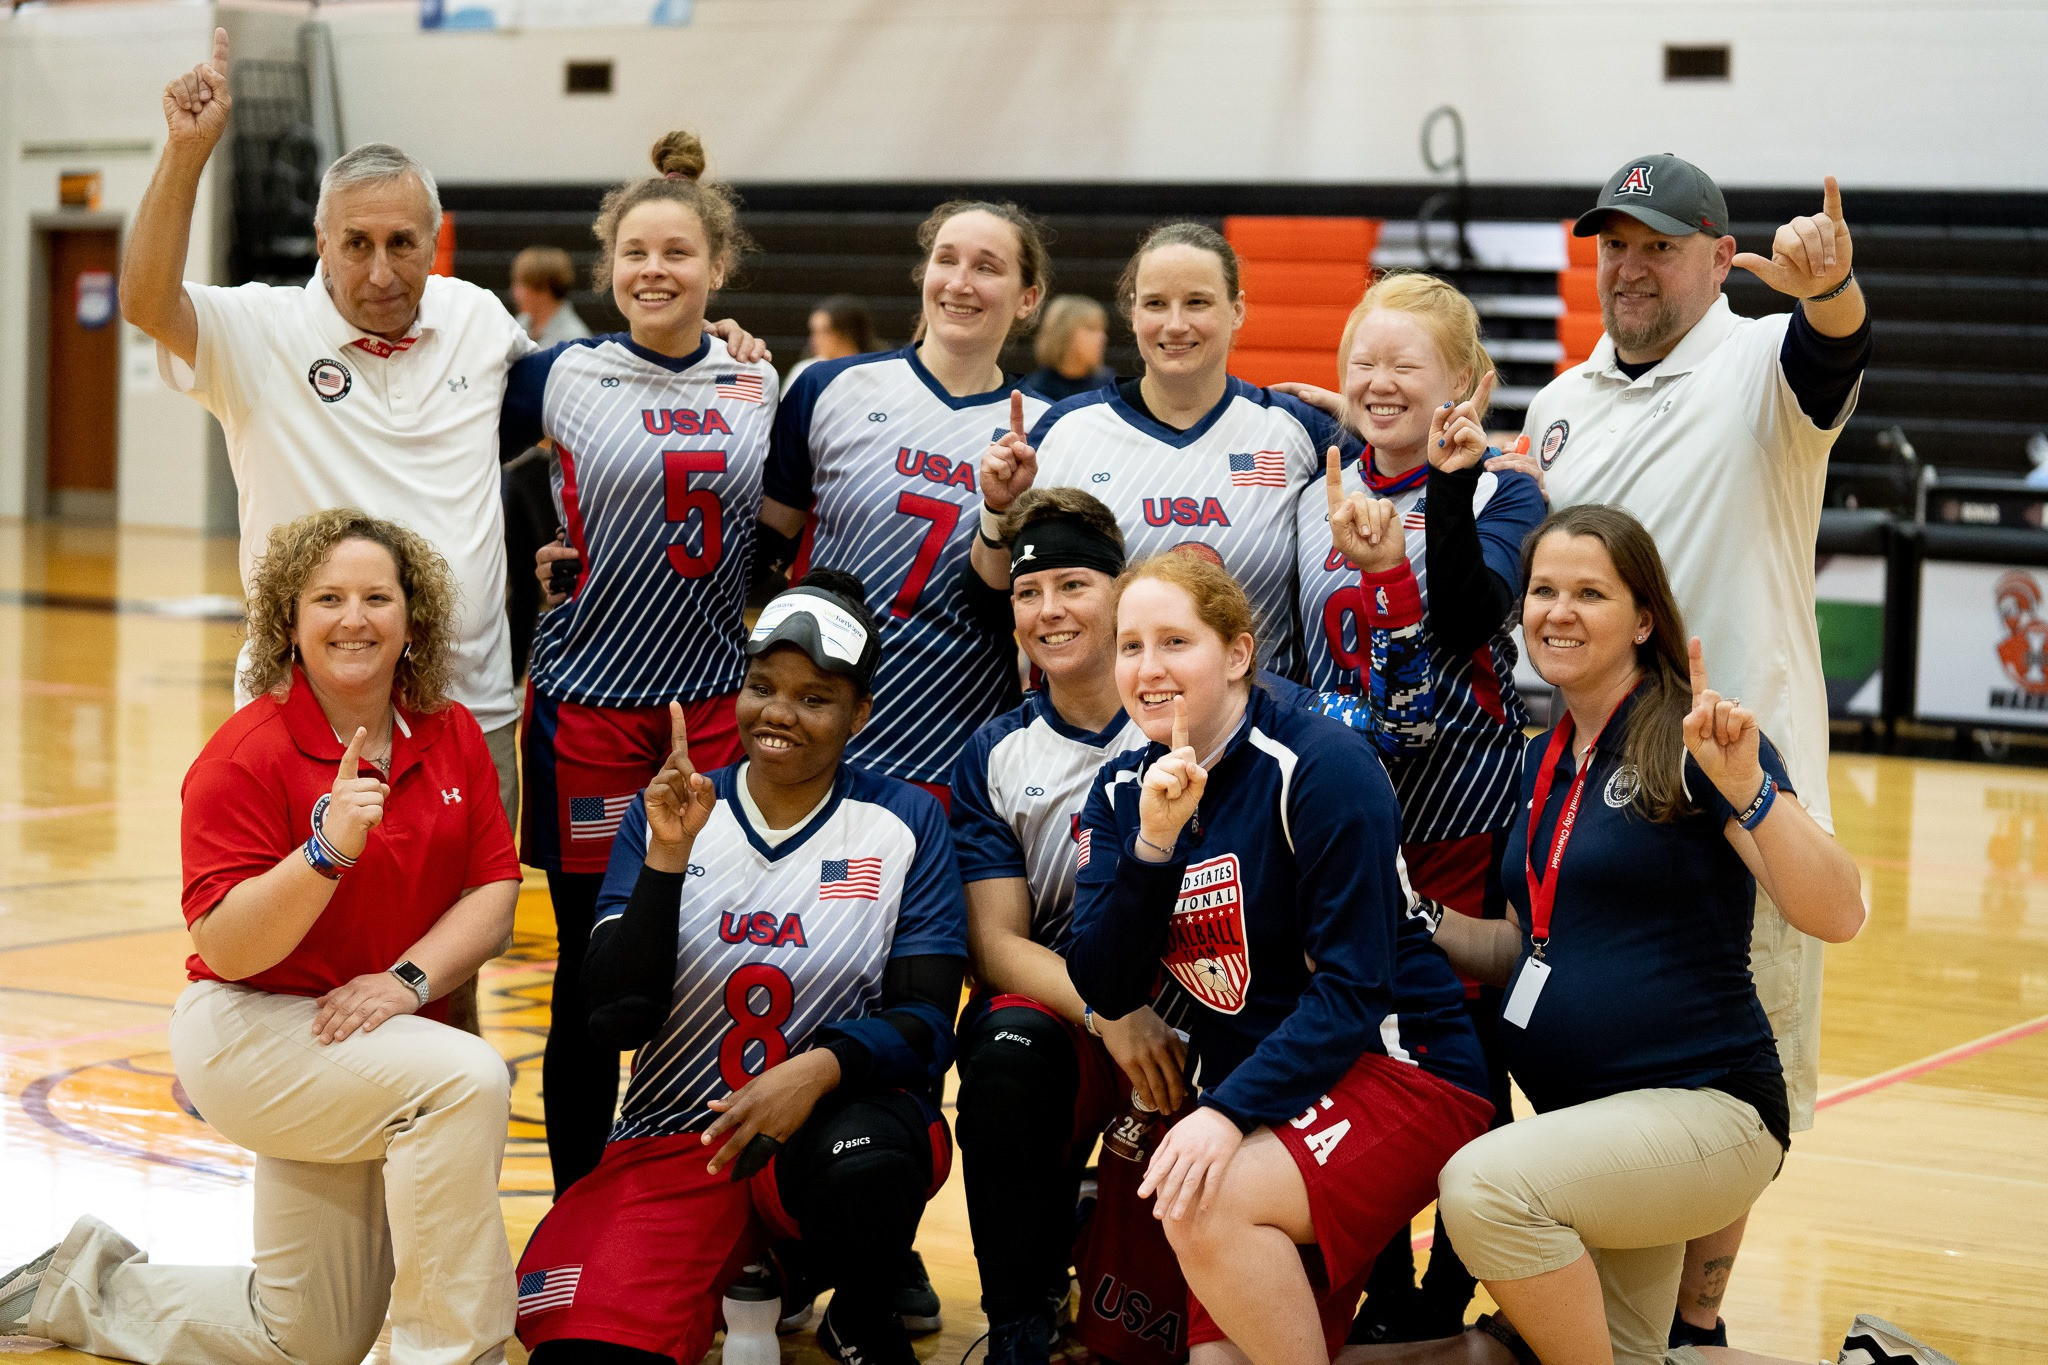 Hosts United States booked their Paralympic spot in the women's tournament ©IBSA